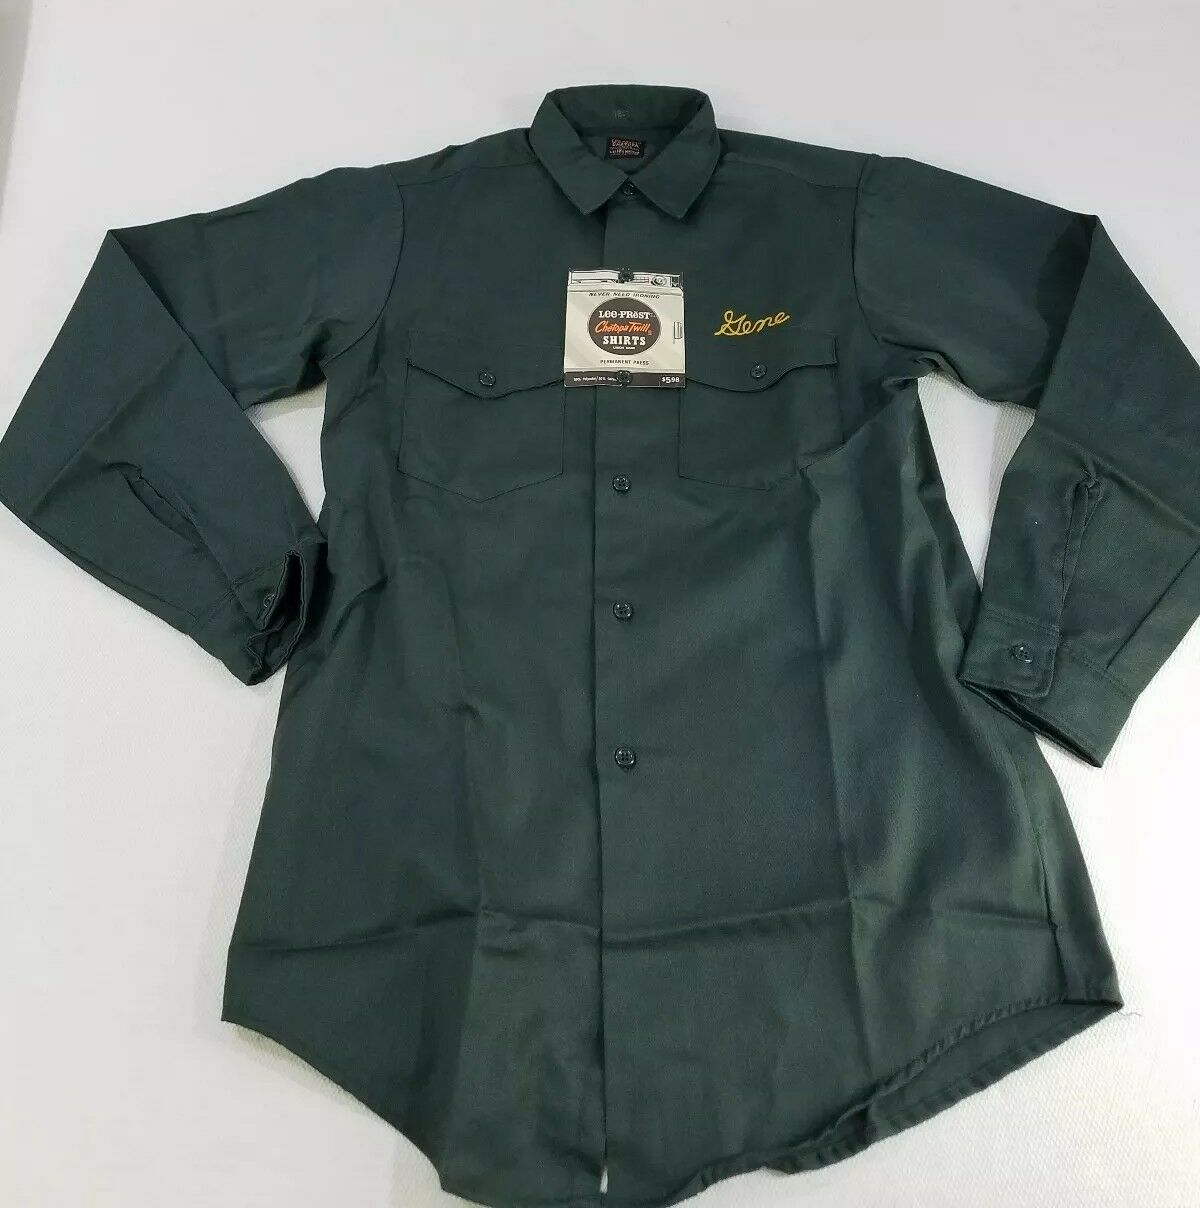 Lee-Prest Tech-Twill Mens Med Vintage 70s Green Cotton Workwear Work Shirt Gene